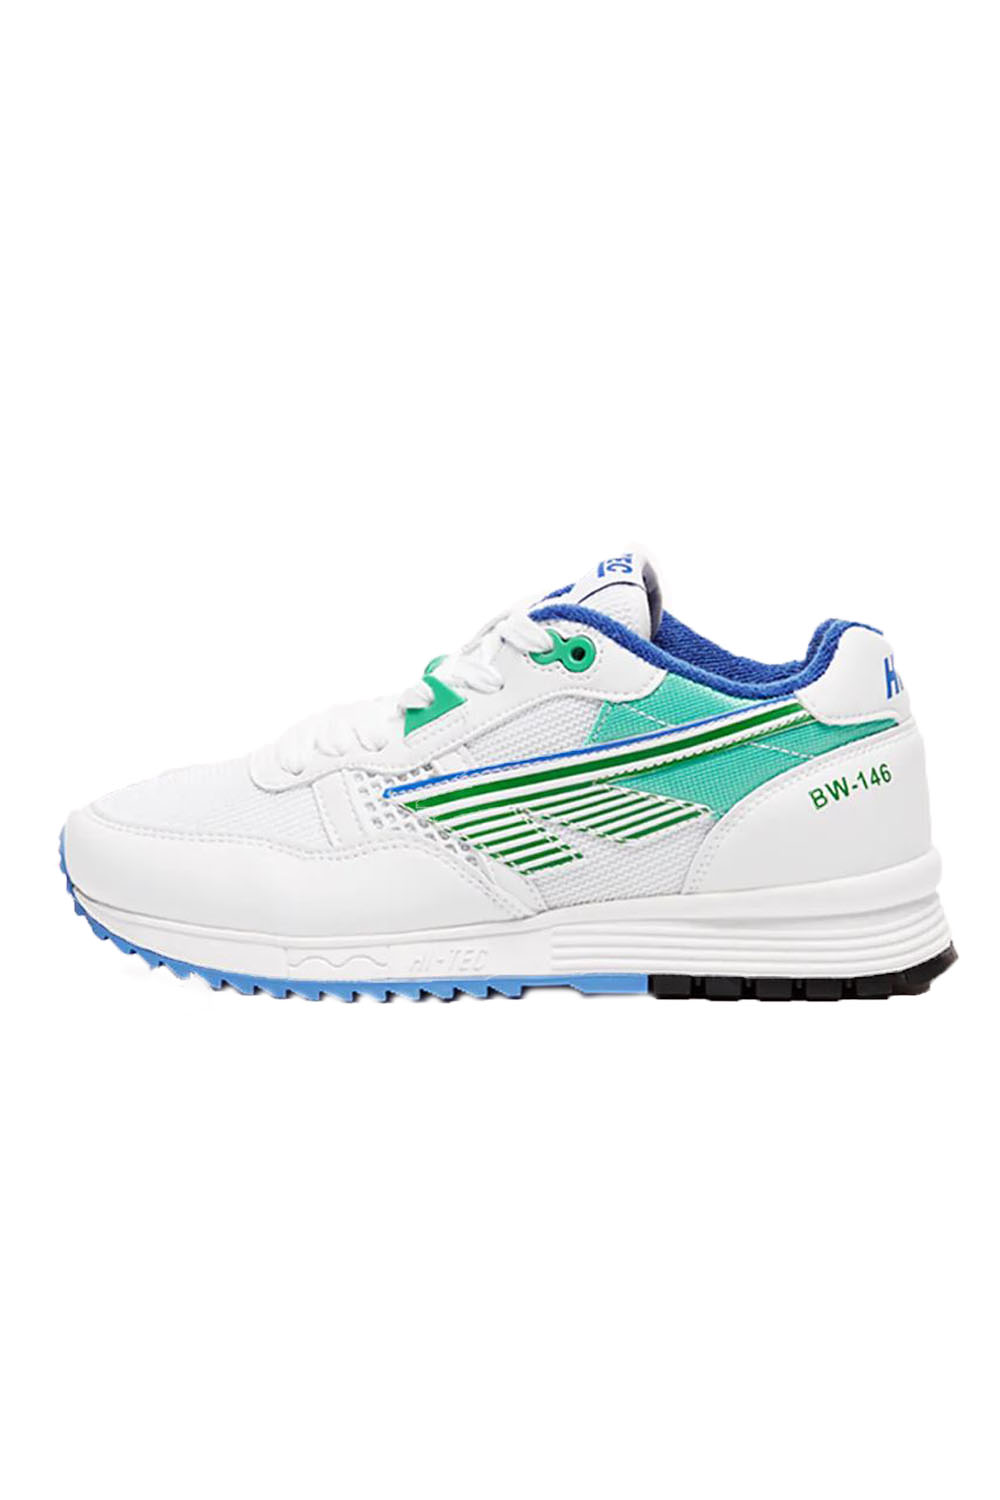 Hi-Tec-Unisex-Badwater-146-Retro-Trainers-Lace-Up-Running-Sport-Low-Top-Sneakers thumbnail 3